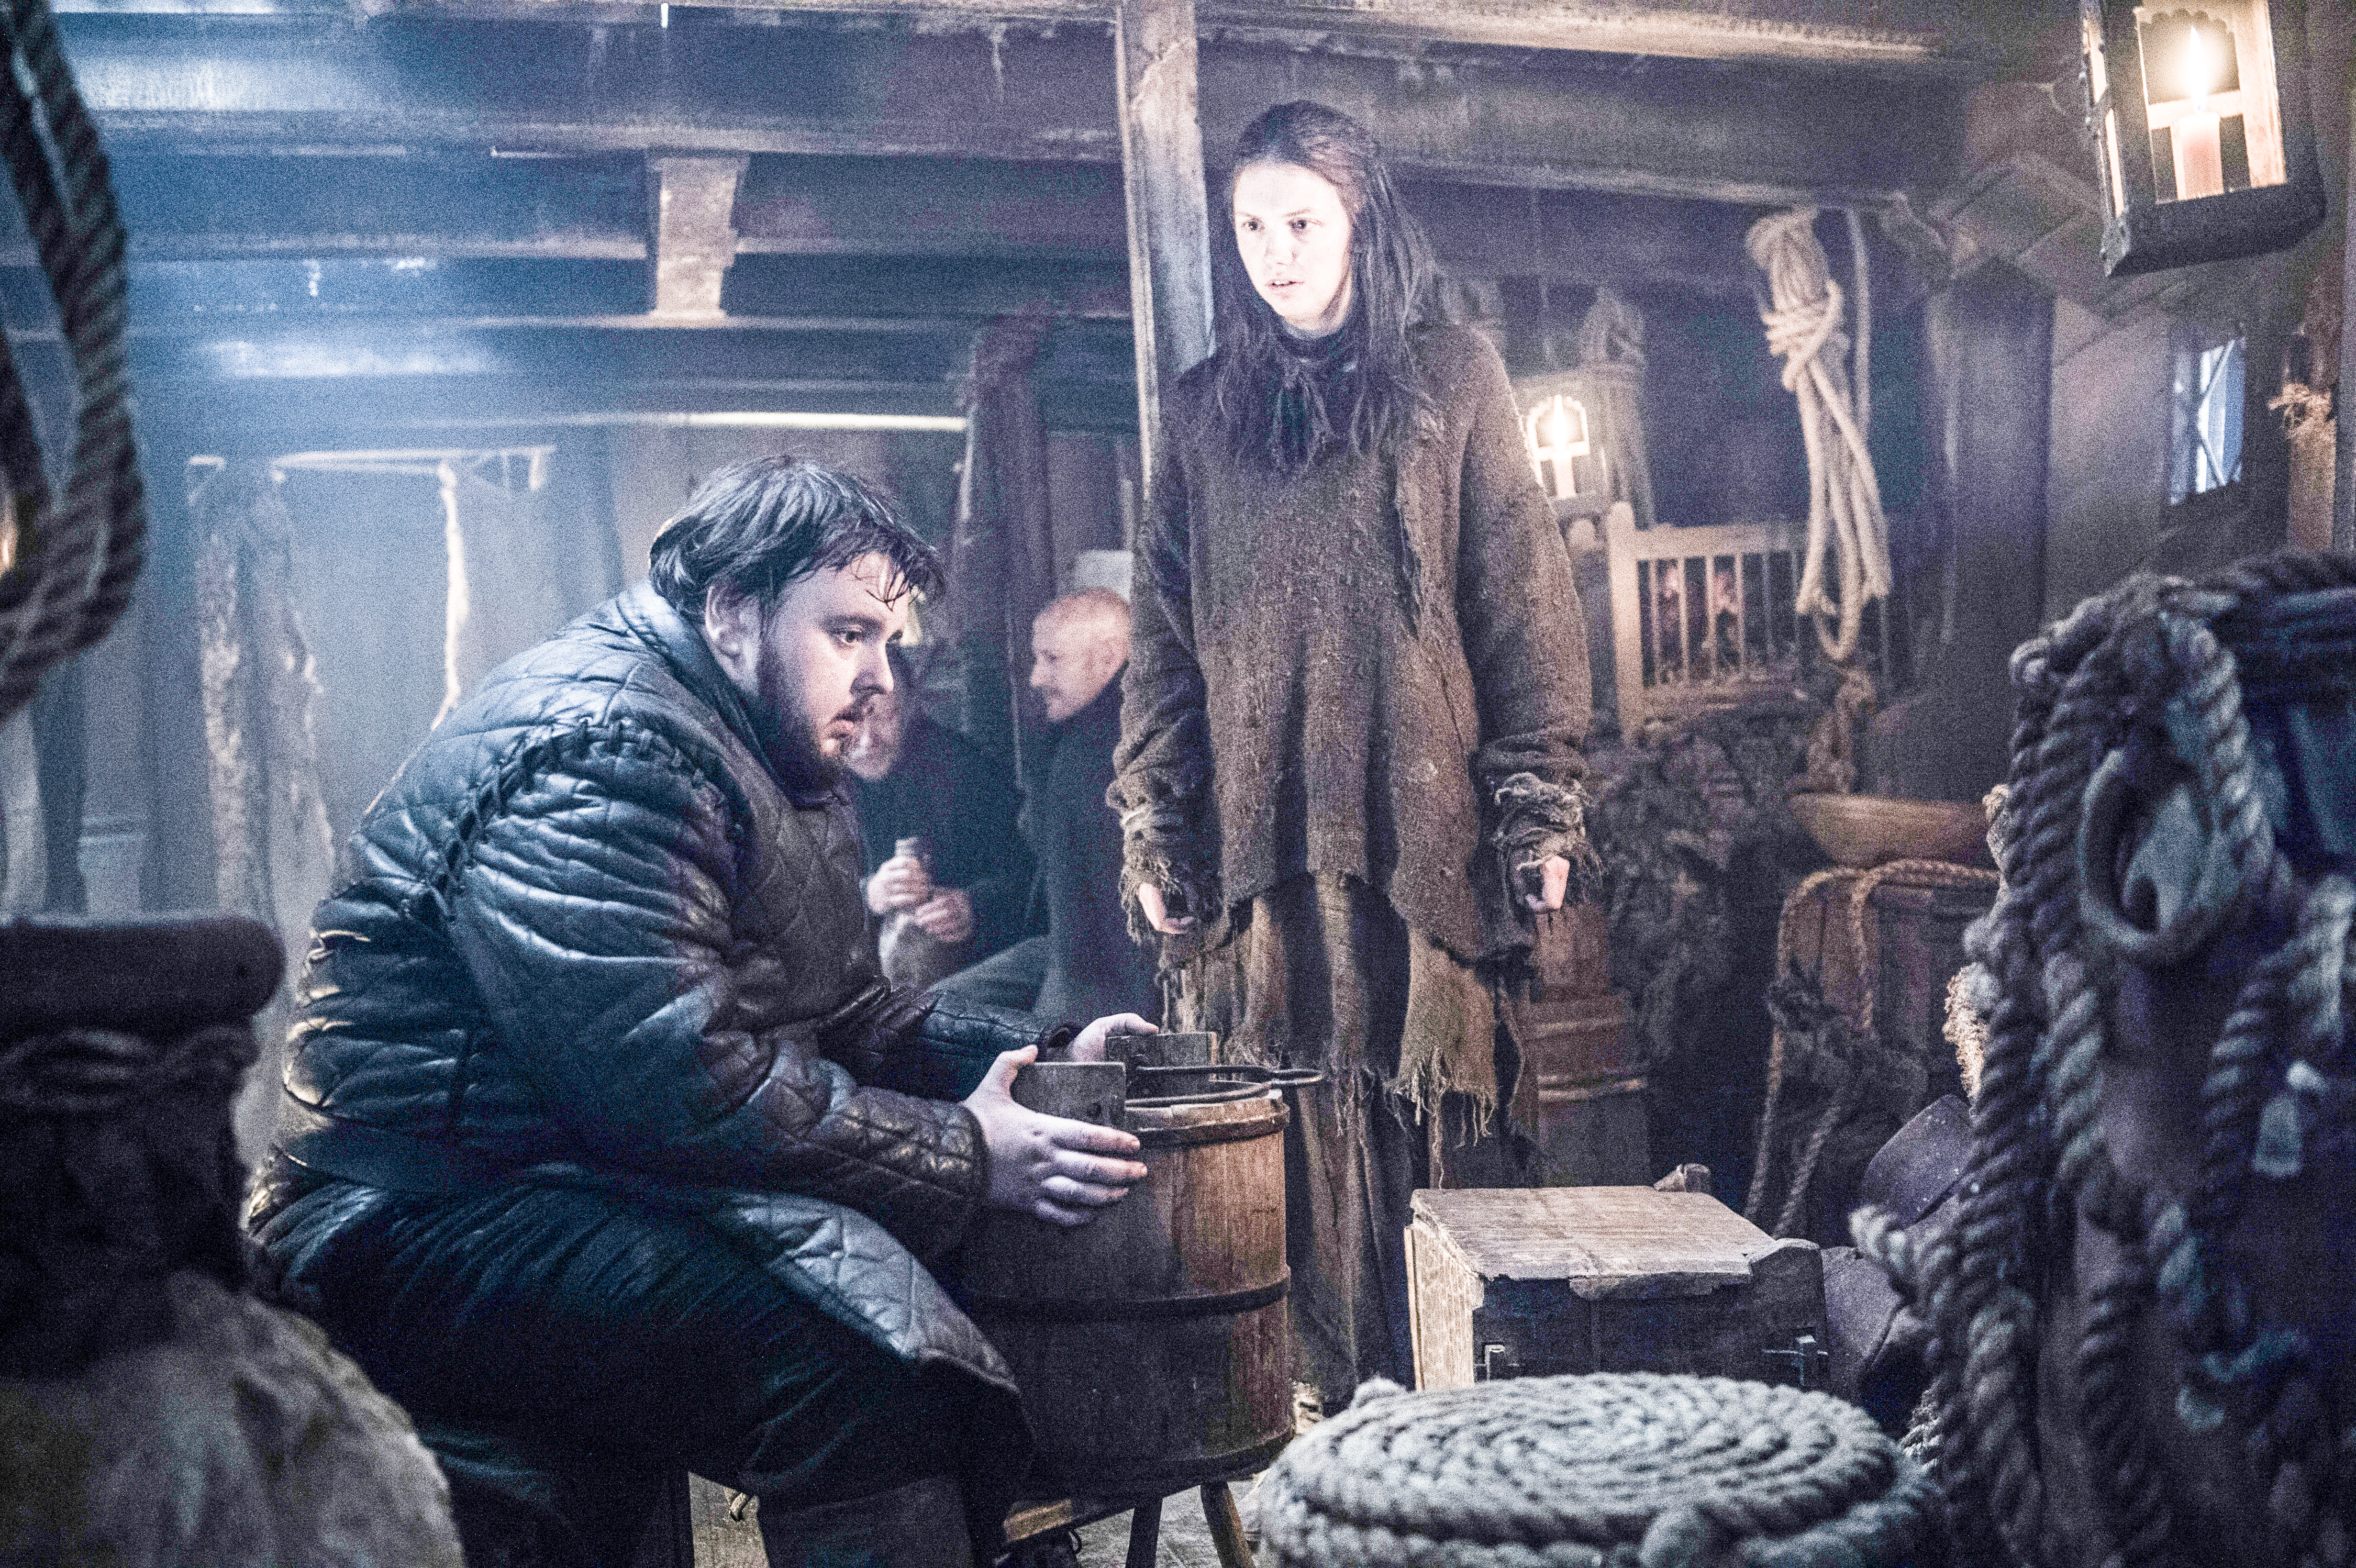 John Bradley-West as Samwell Tarly and Hannah Murray as Gilly. Photo by Helen Sloan/HBO